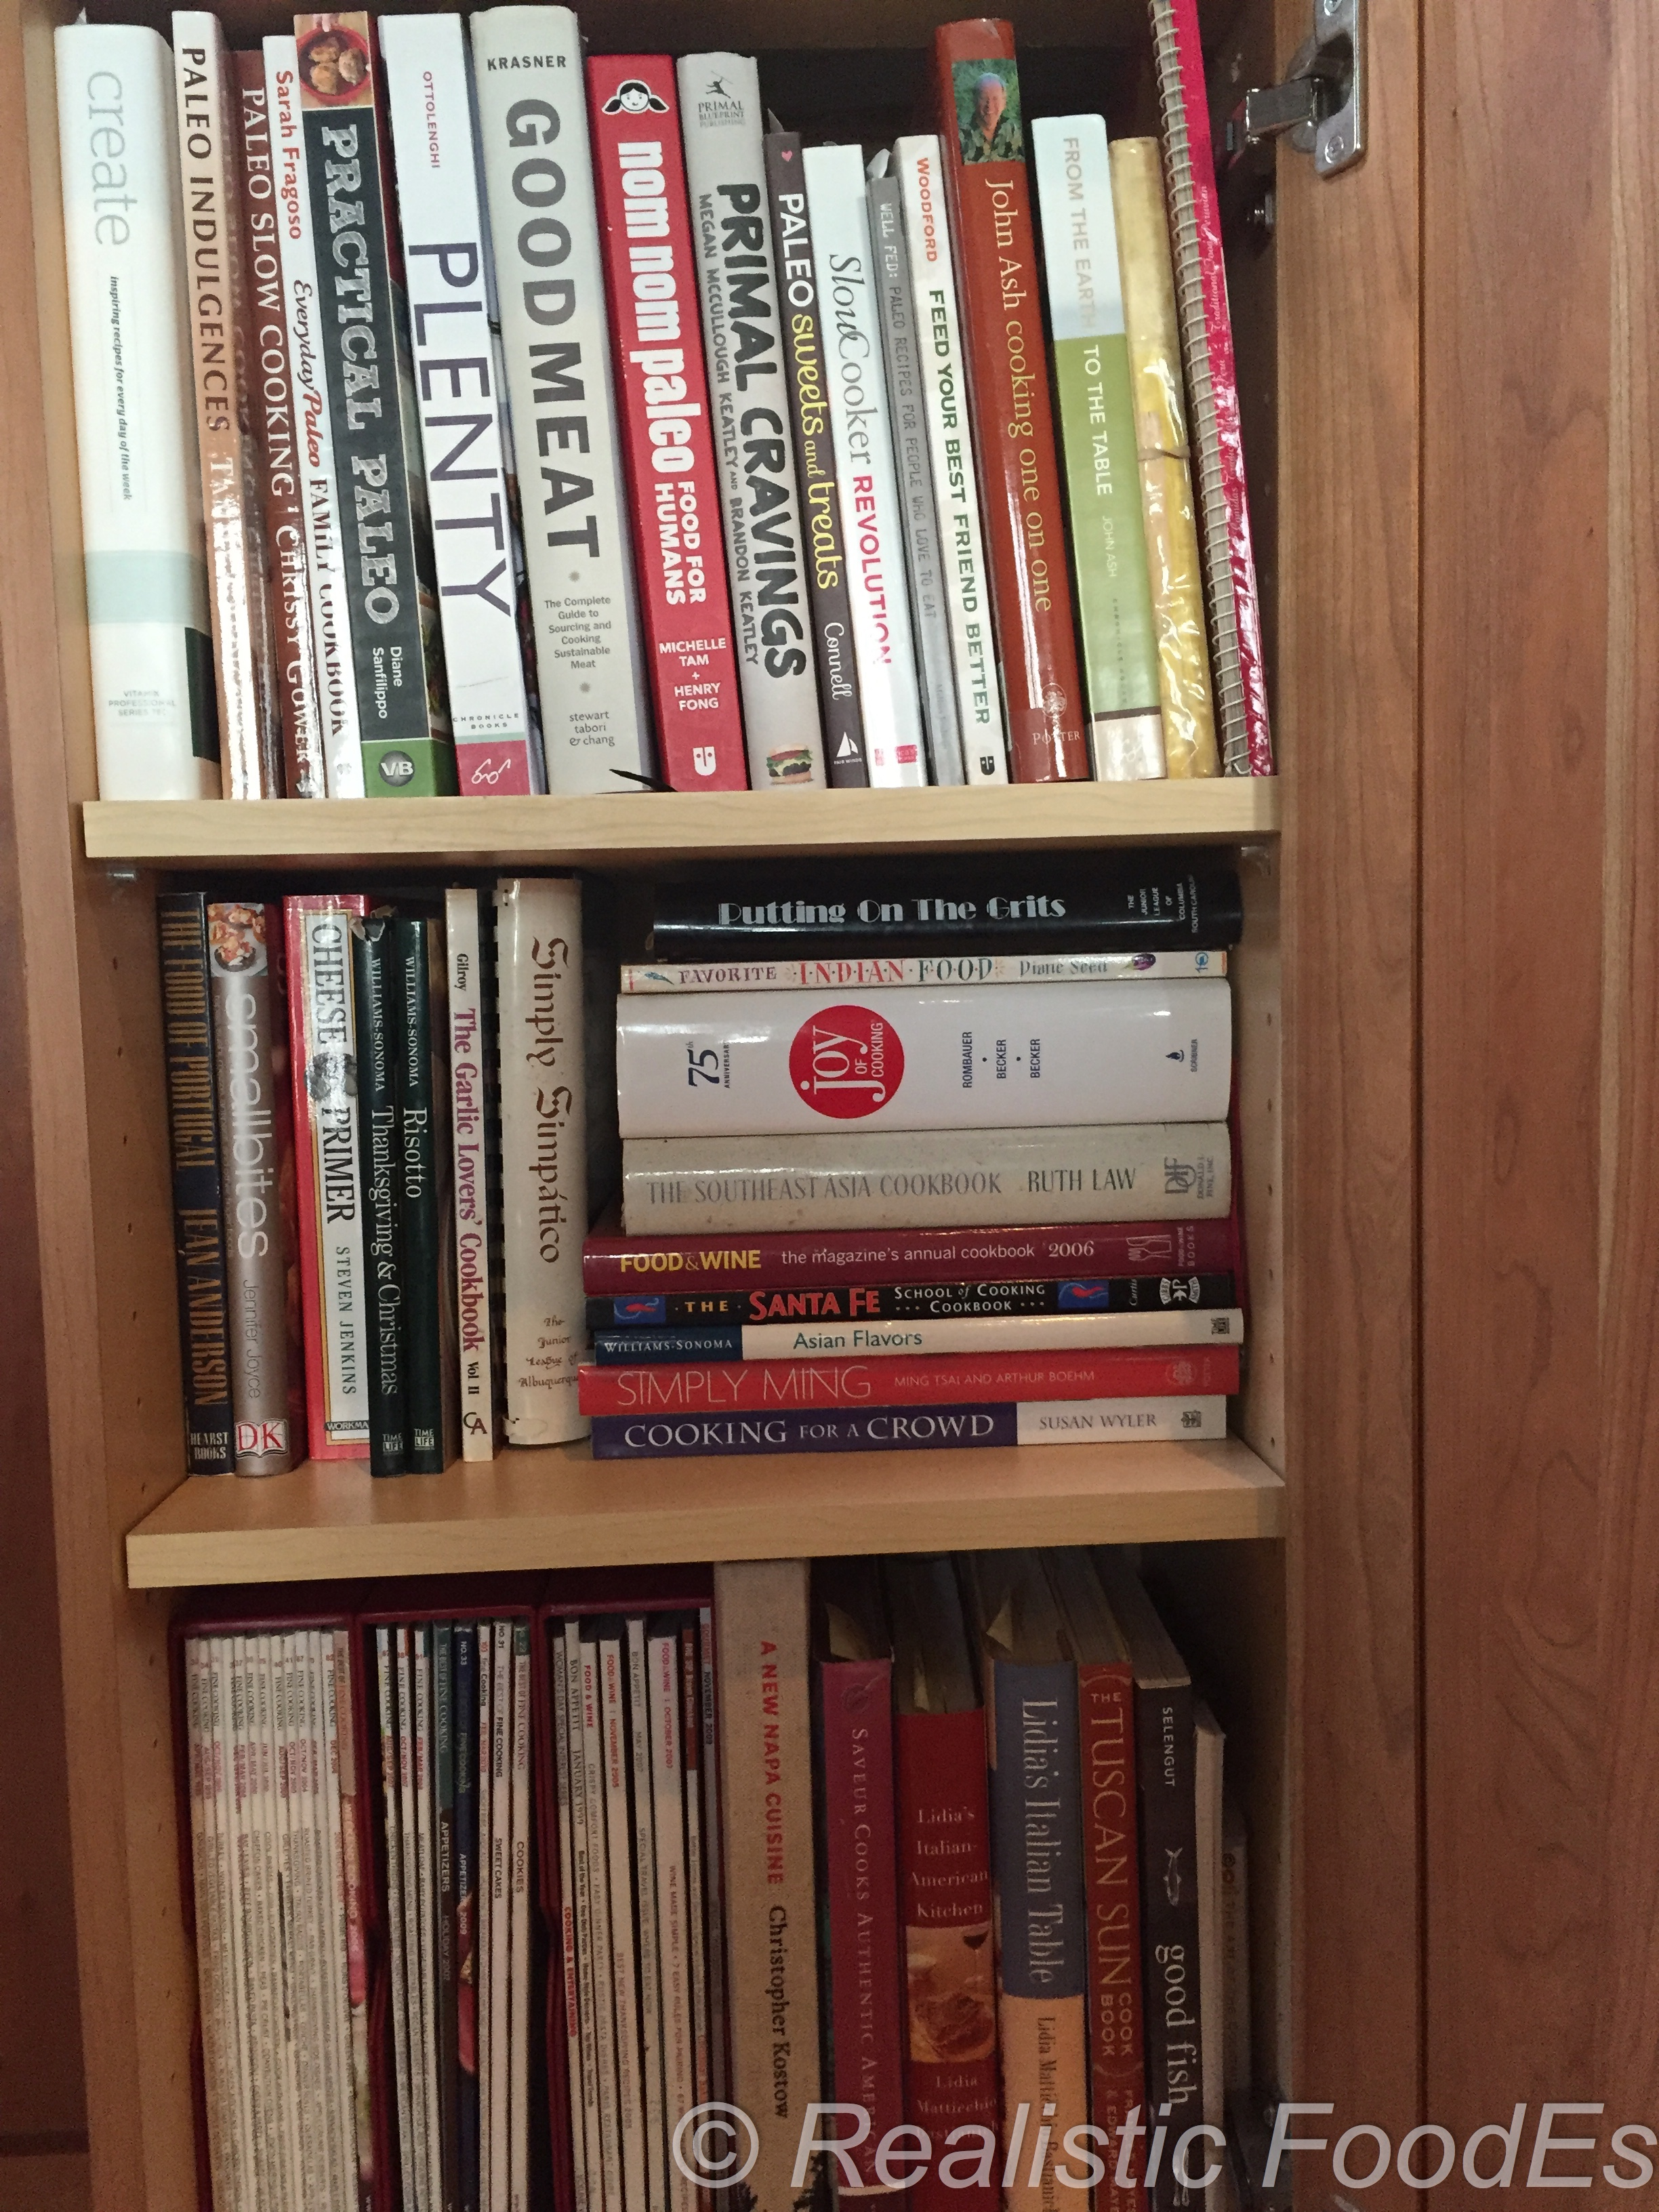 A sample of my cookbook collection. I have many more books and recipes!